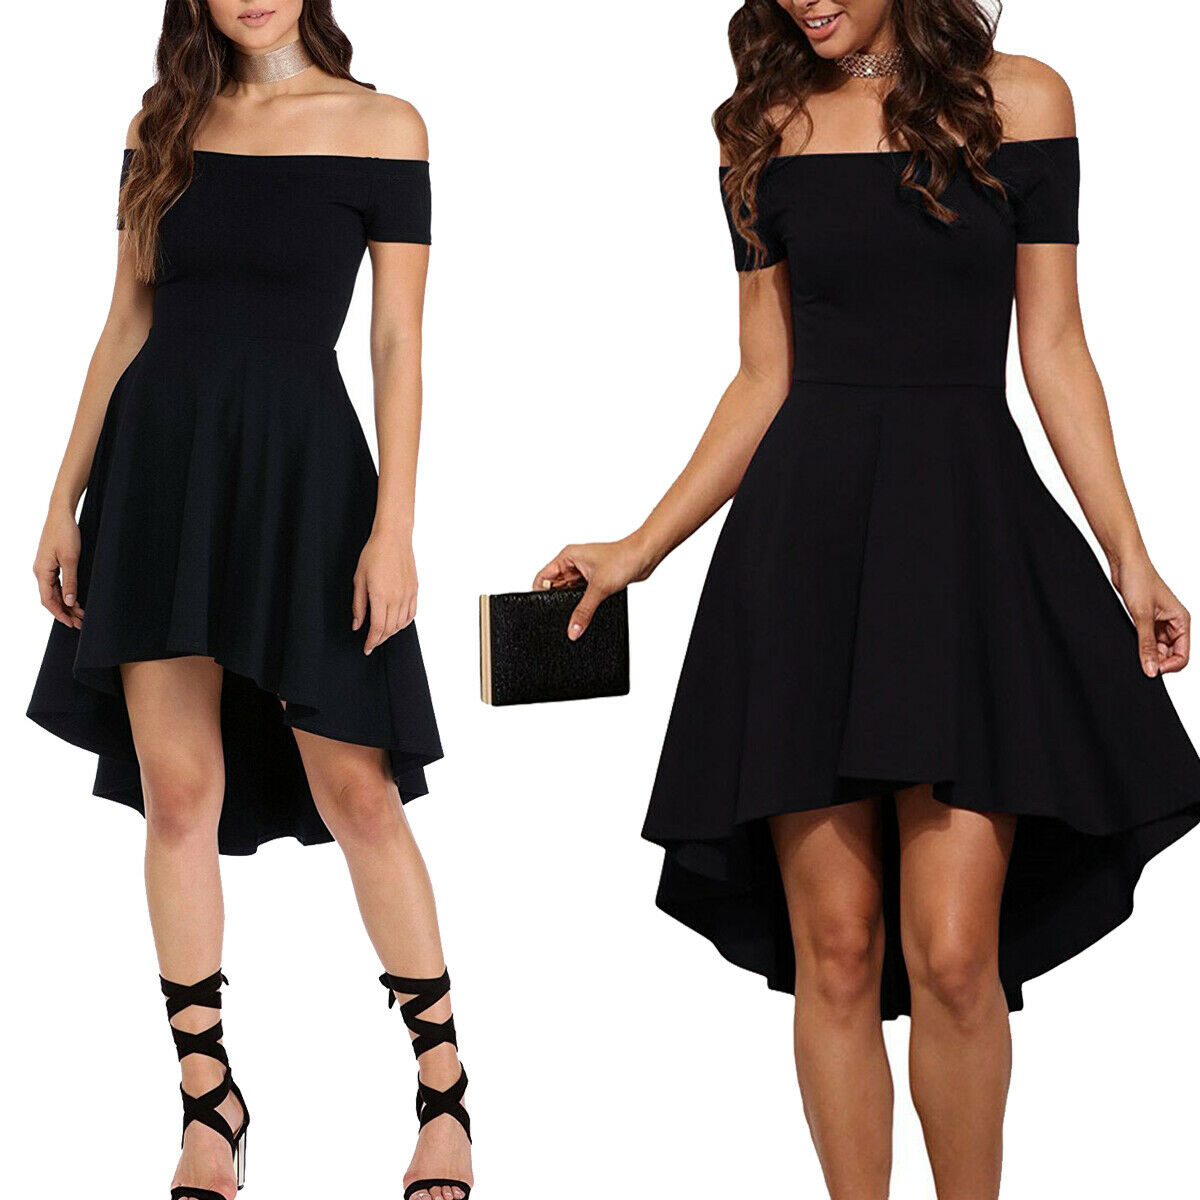 Elegant Black Women Short Sleeve Casual Cocktail Evening Party Short Mini Dress Clothing, Shoes & Accessories